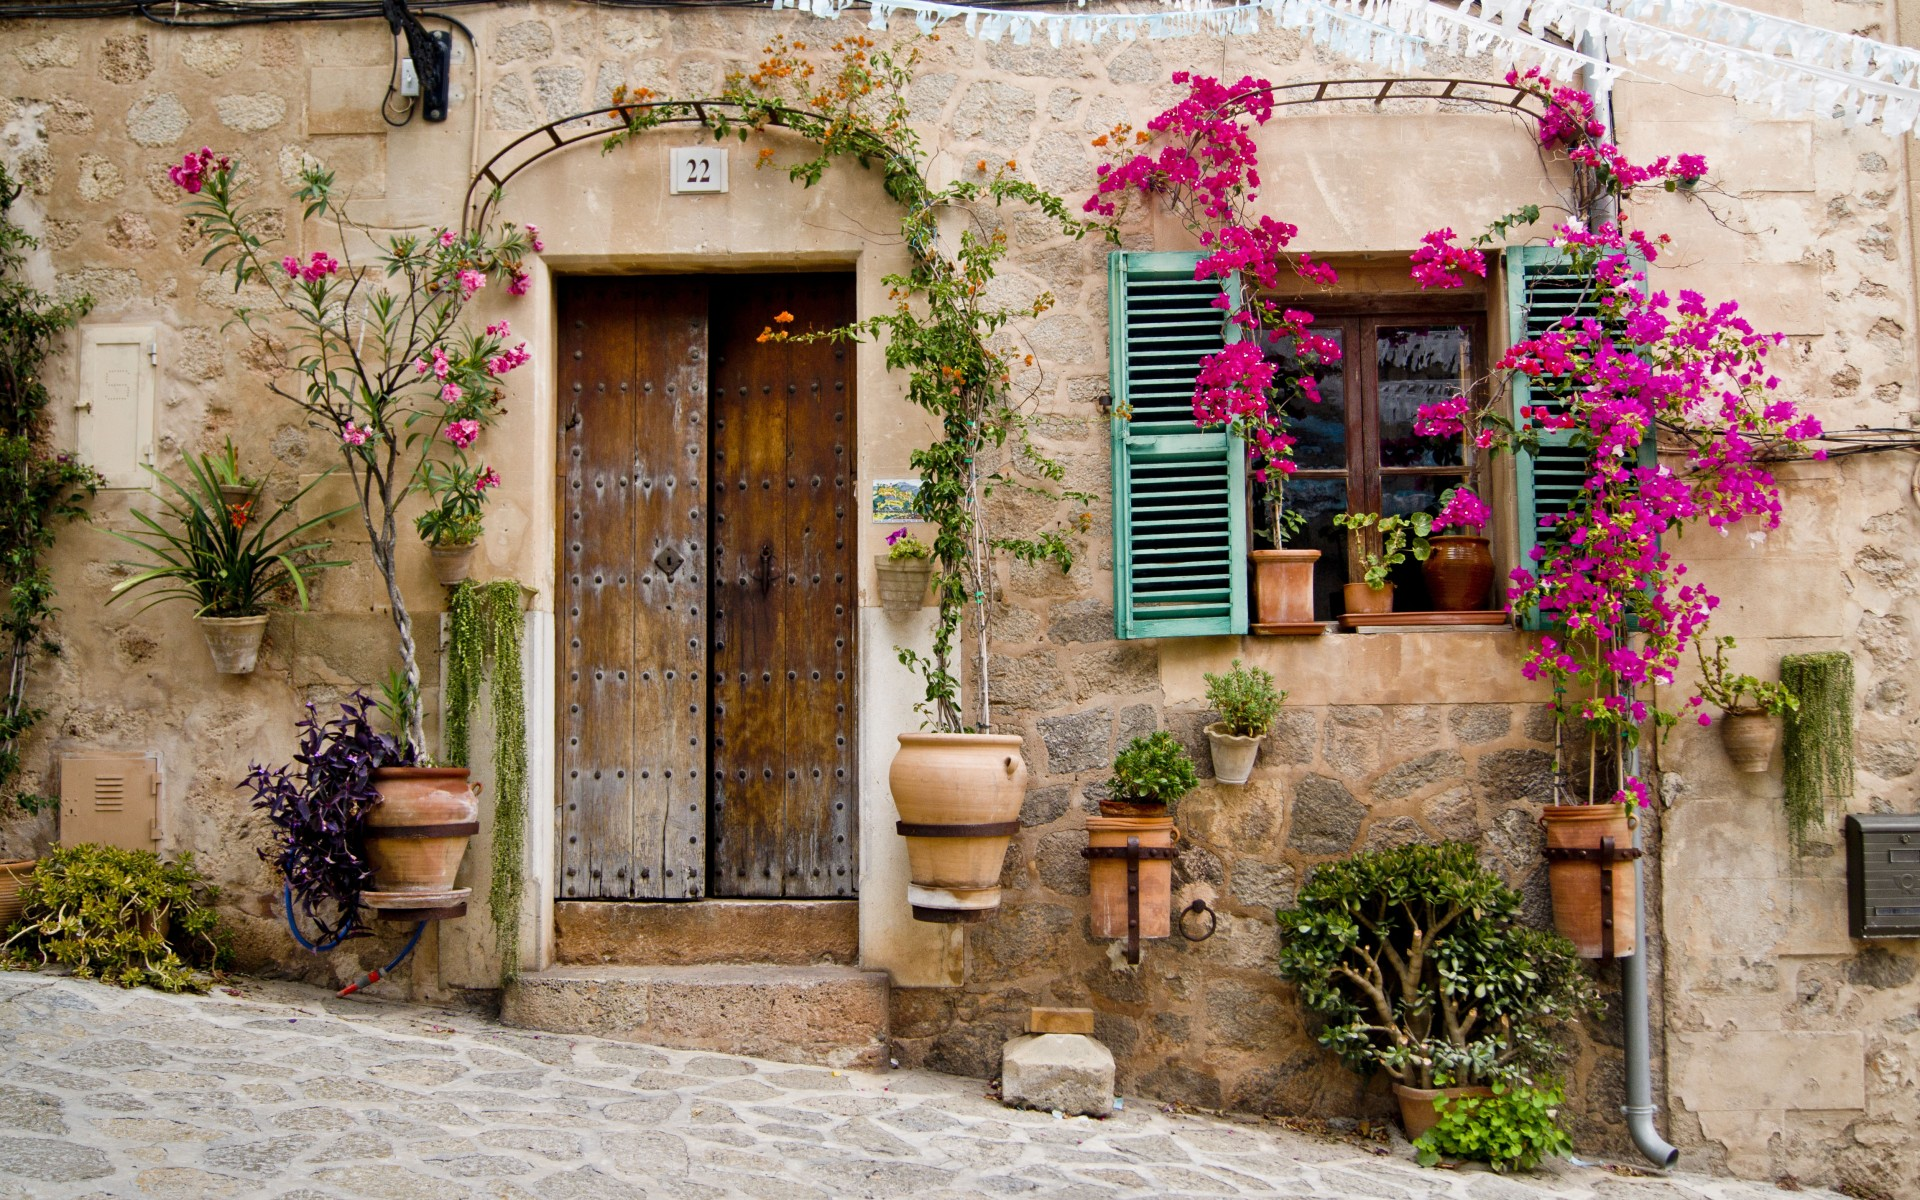 Provence mallorca buildings stoop door window flowers wallpaper 1920x1200 30165 wallpaperup for Decoration rocaille aixen provence